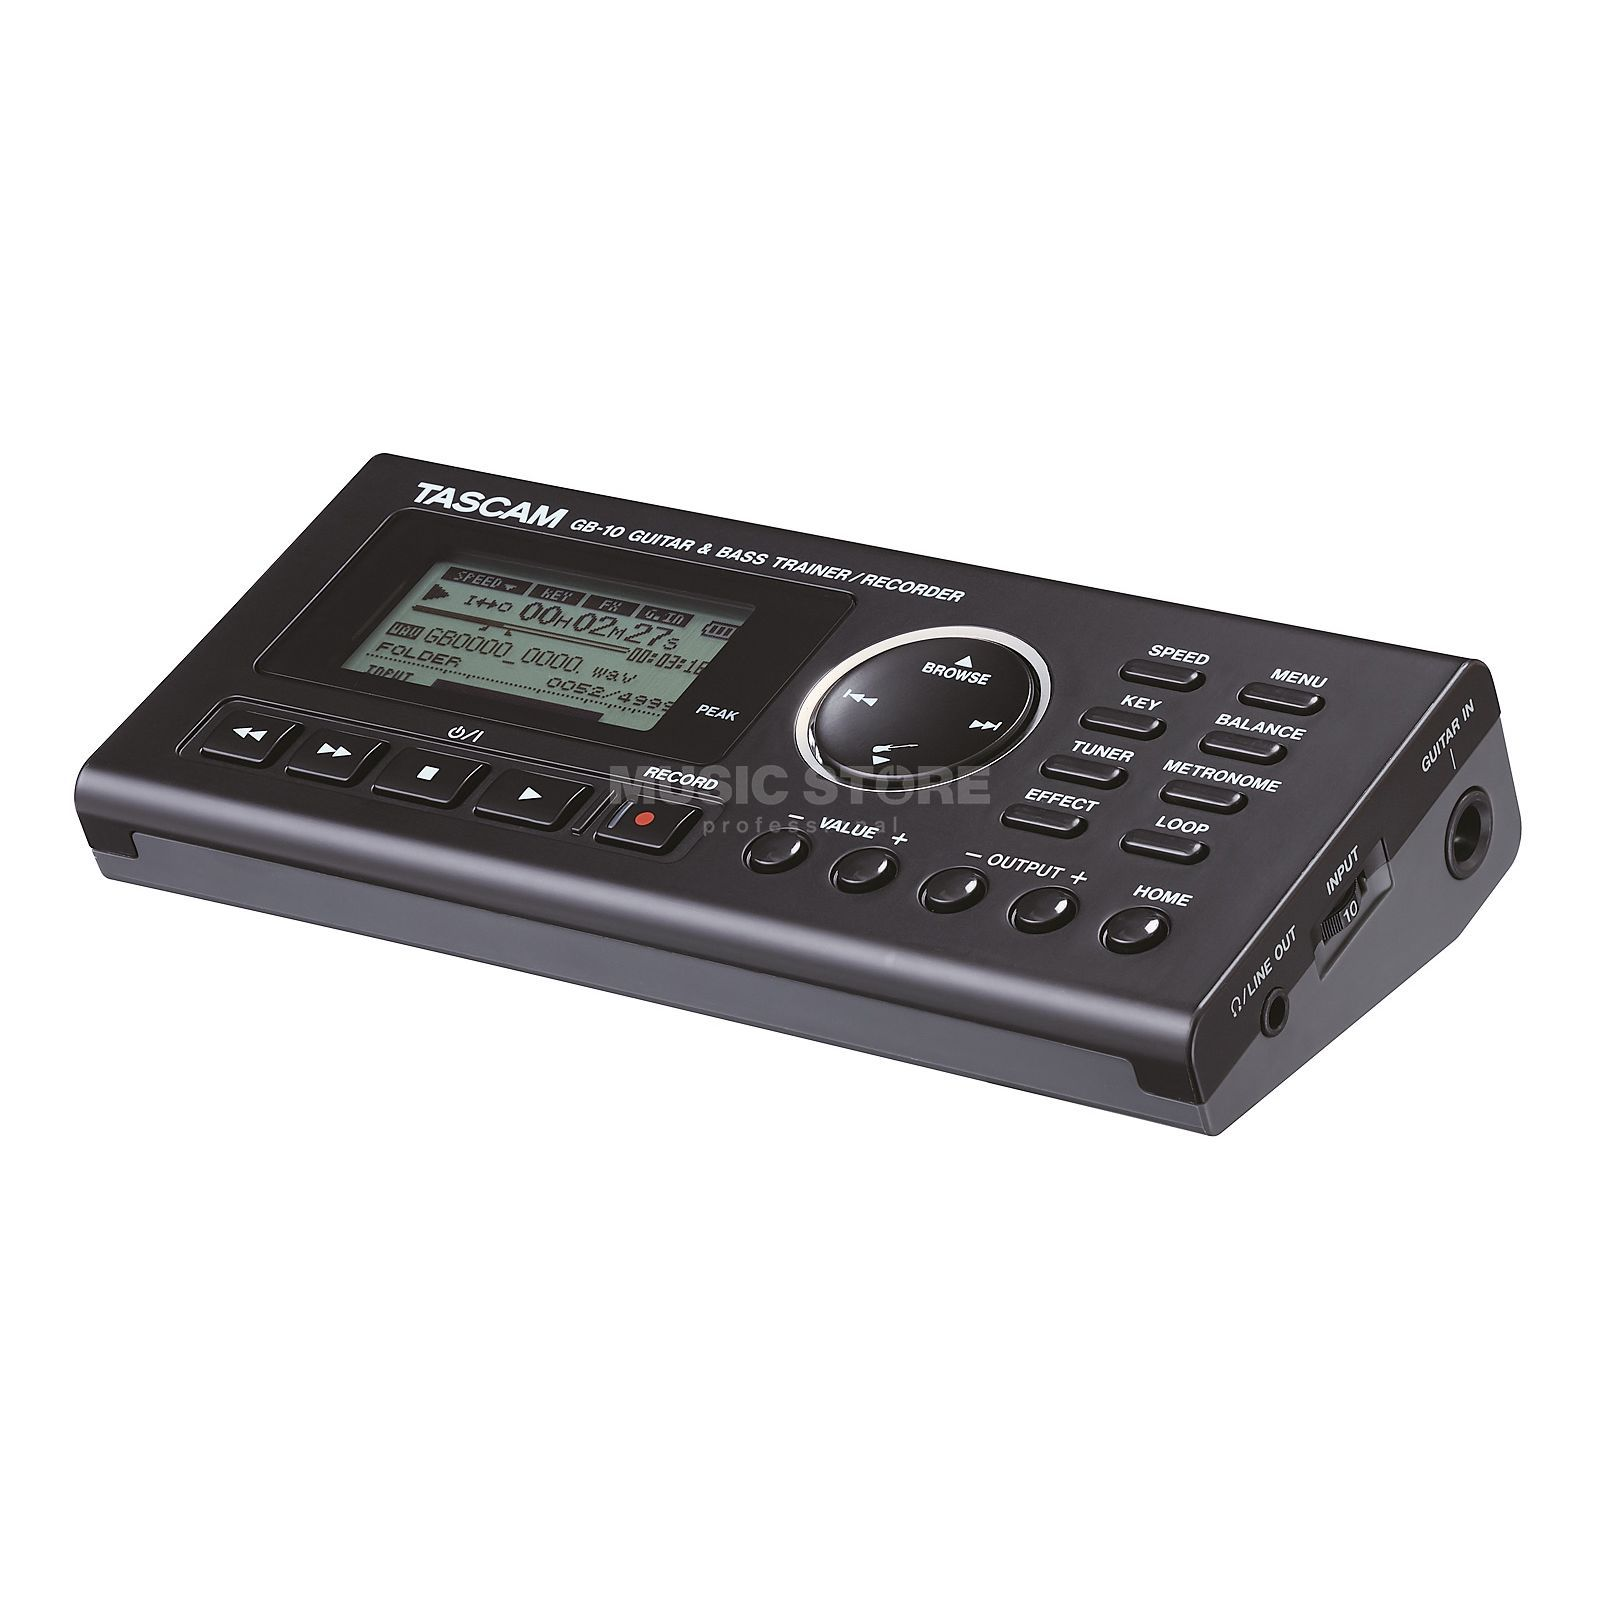 Tascam GB-10 Guitar/Bass Trainer & Recorder Produktbillede